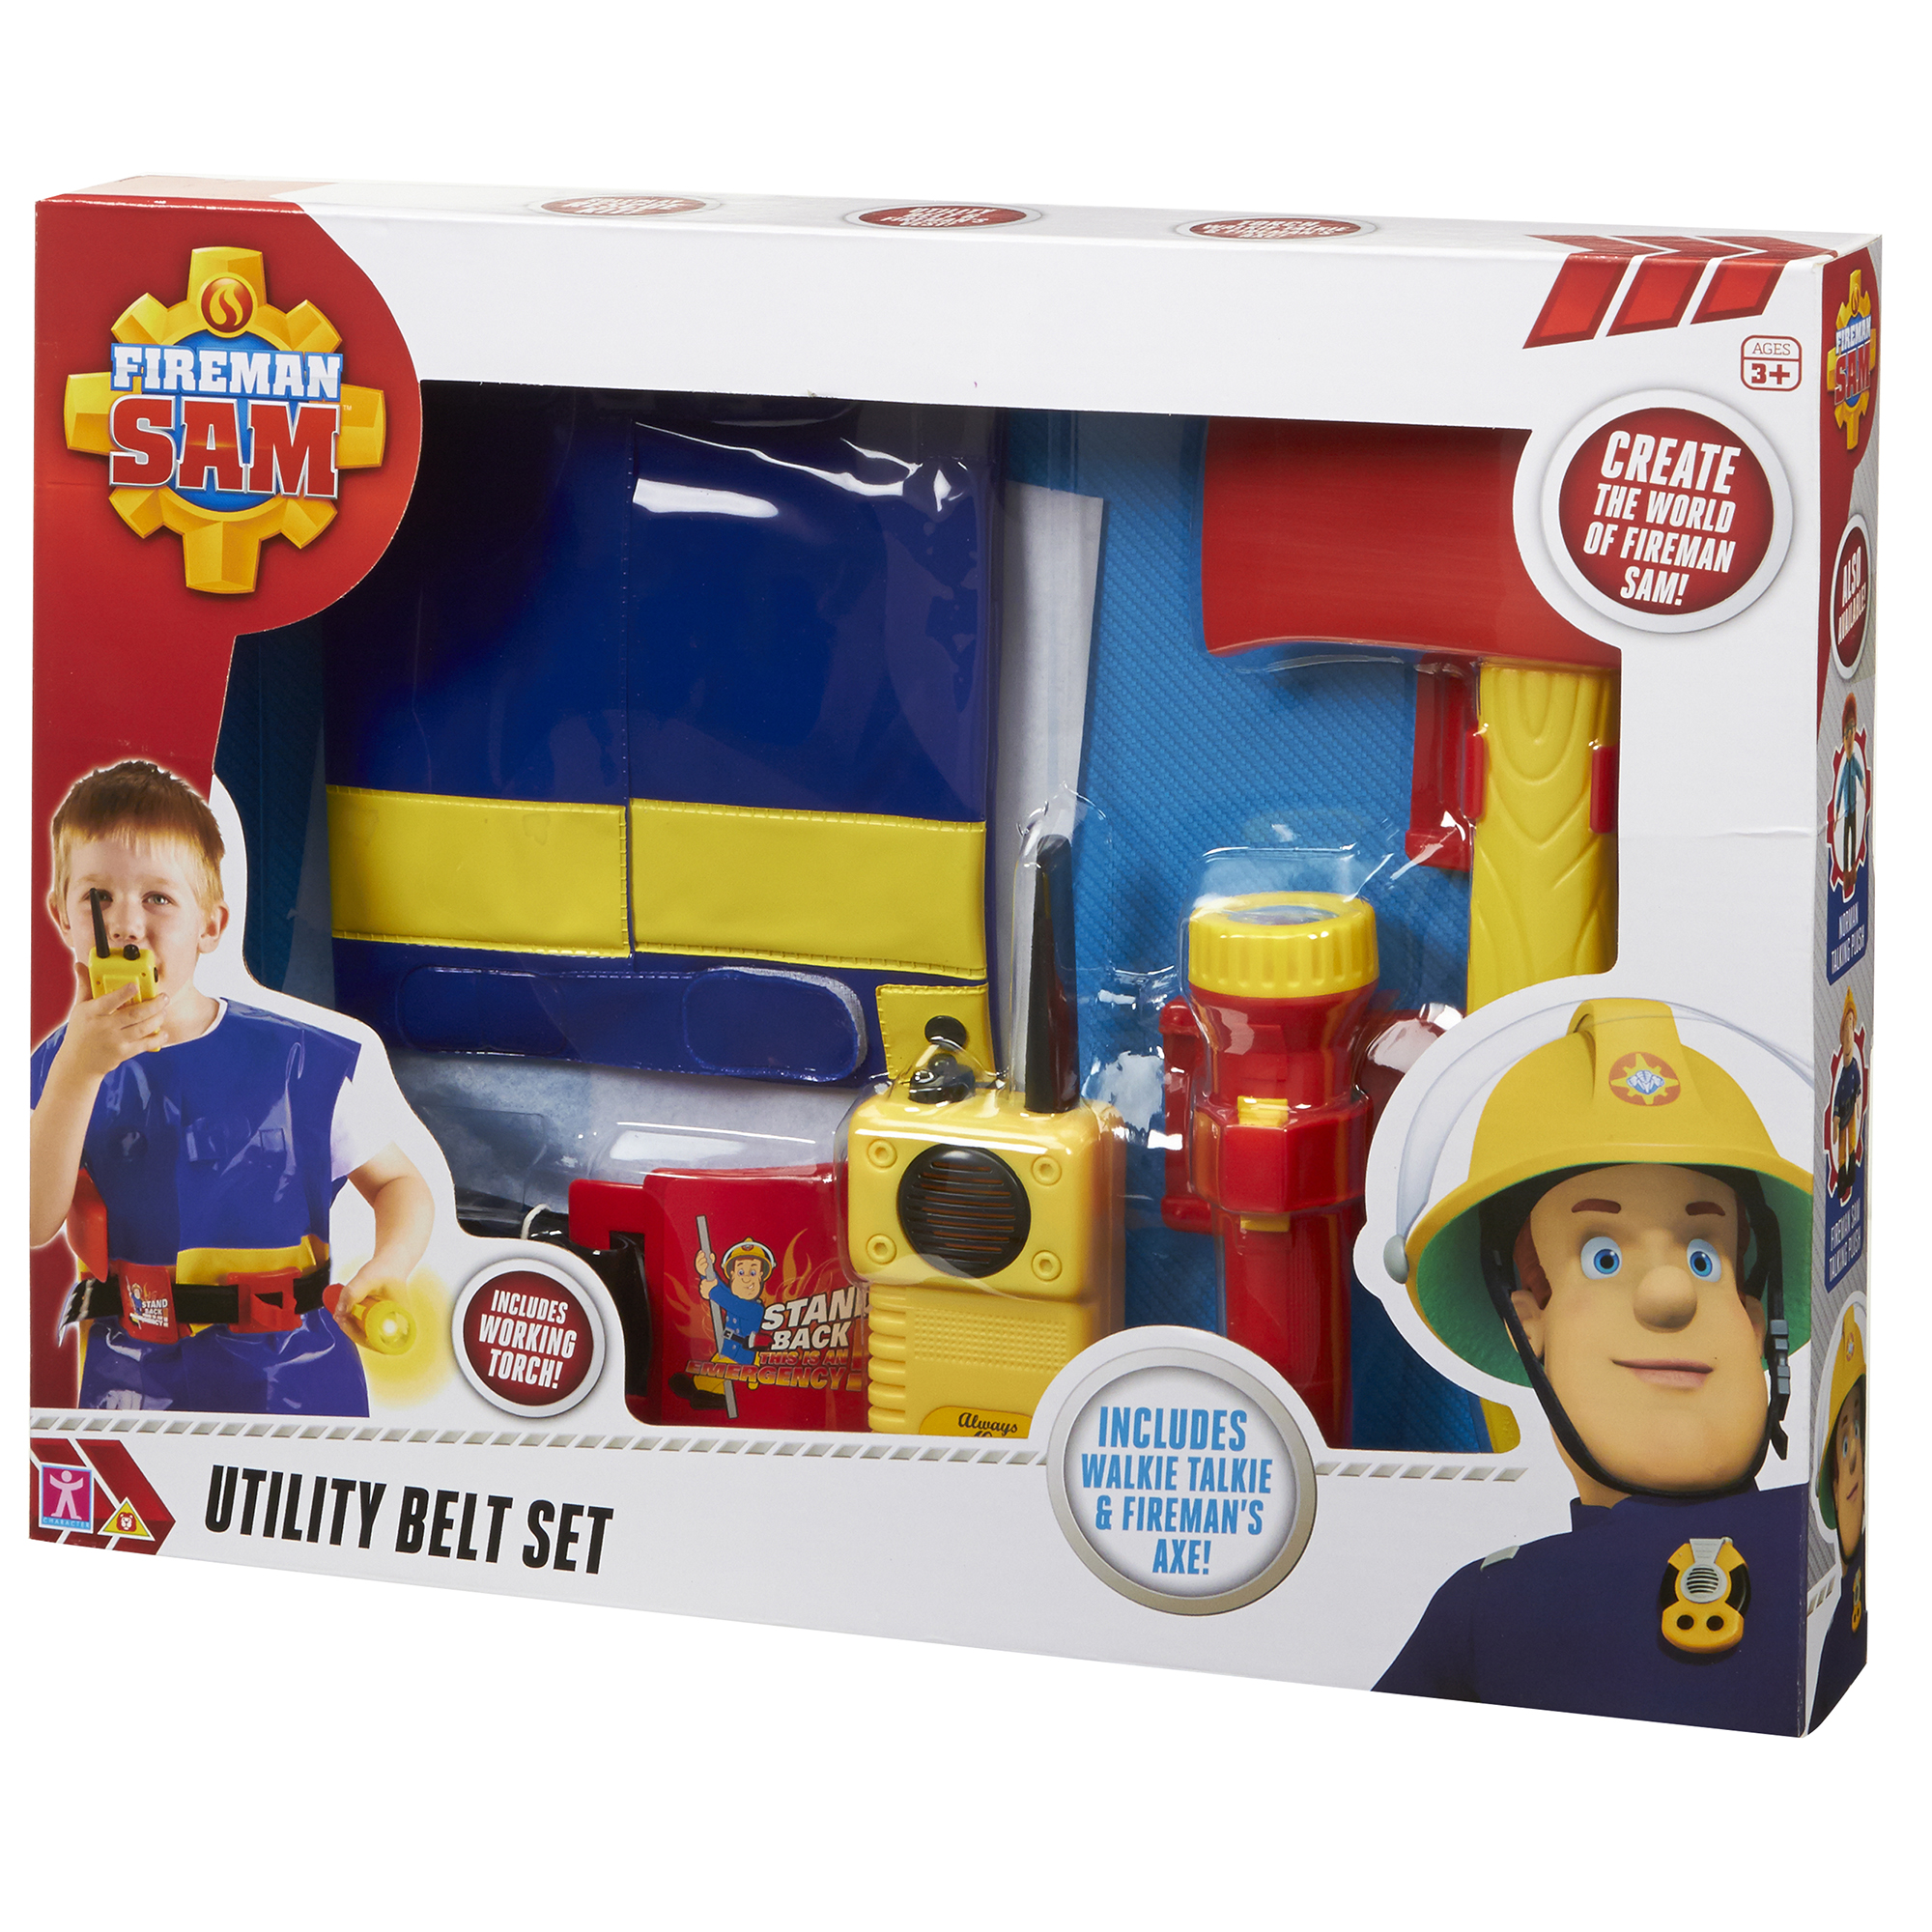 Fireman Sam Utility Belt With Jacket & Accessories